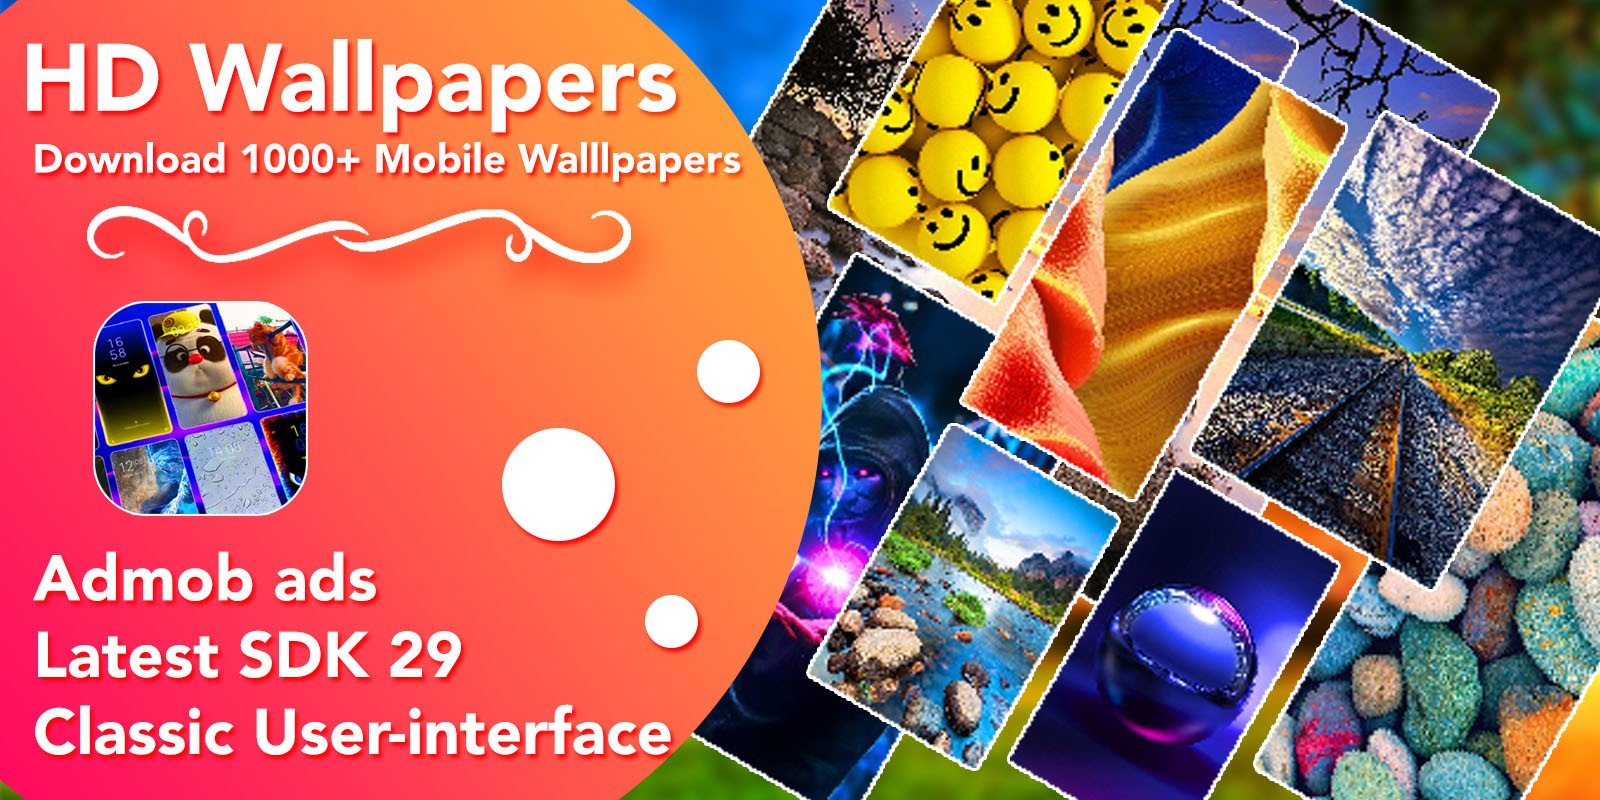 HD Wallpaper App For Android With Admob Ads